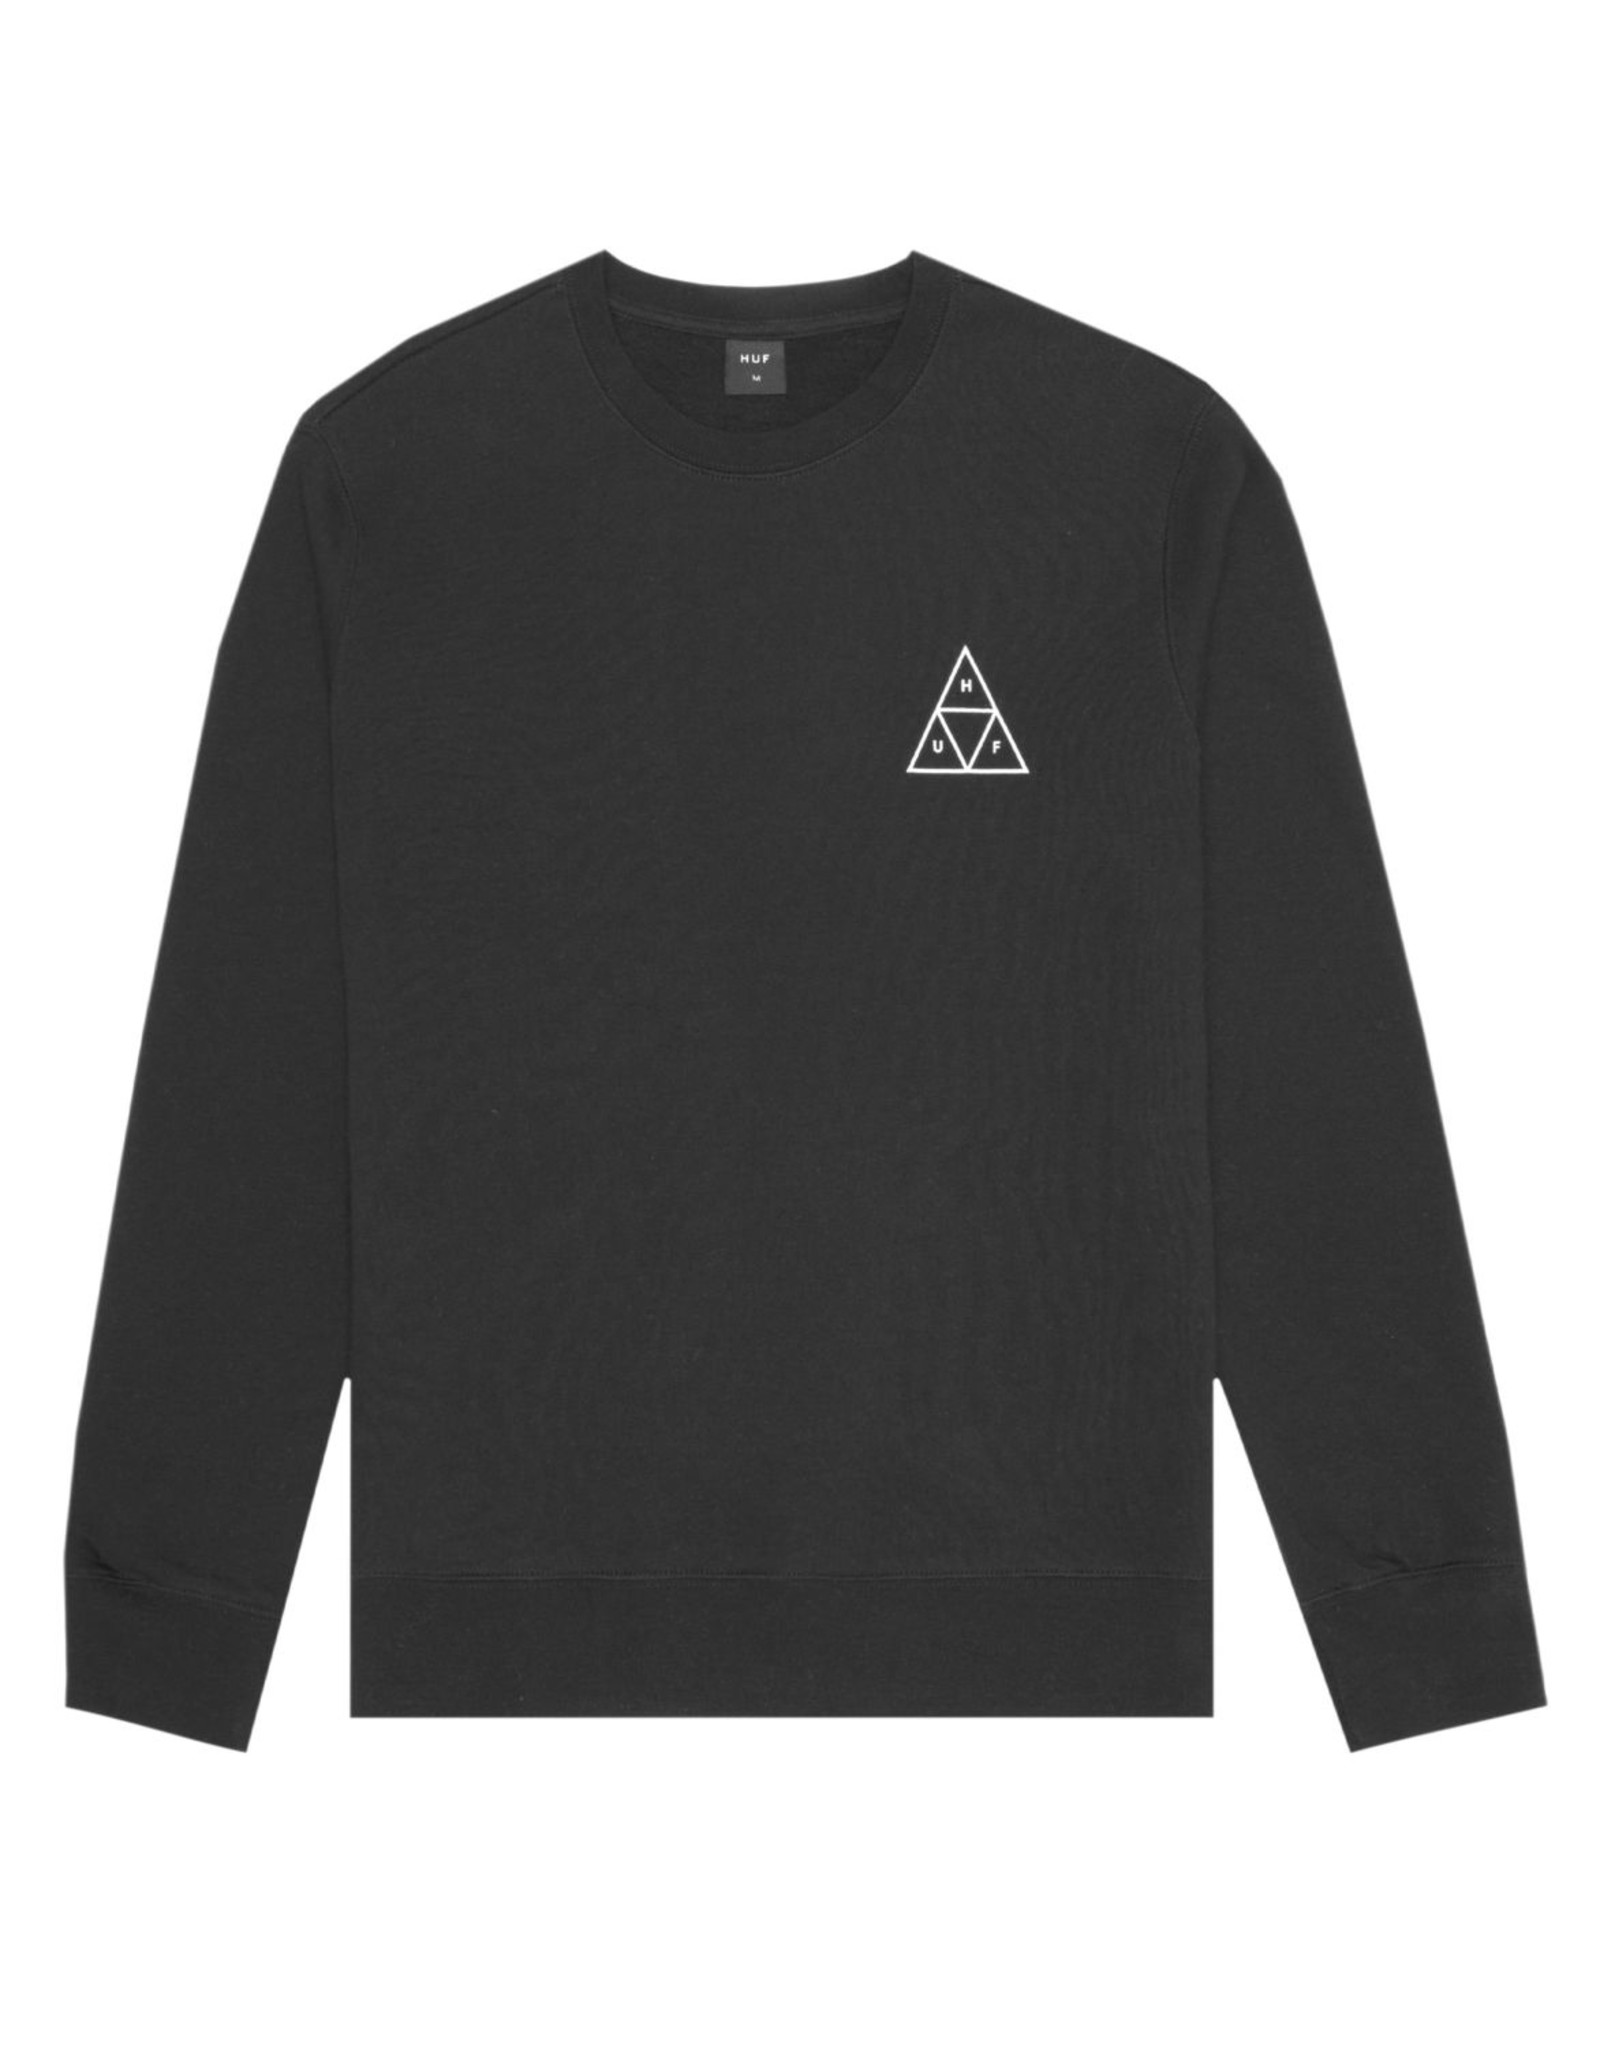 HUF Essentials TT Crew HUF Black